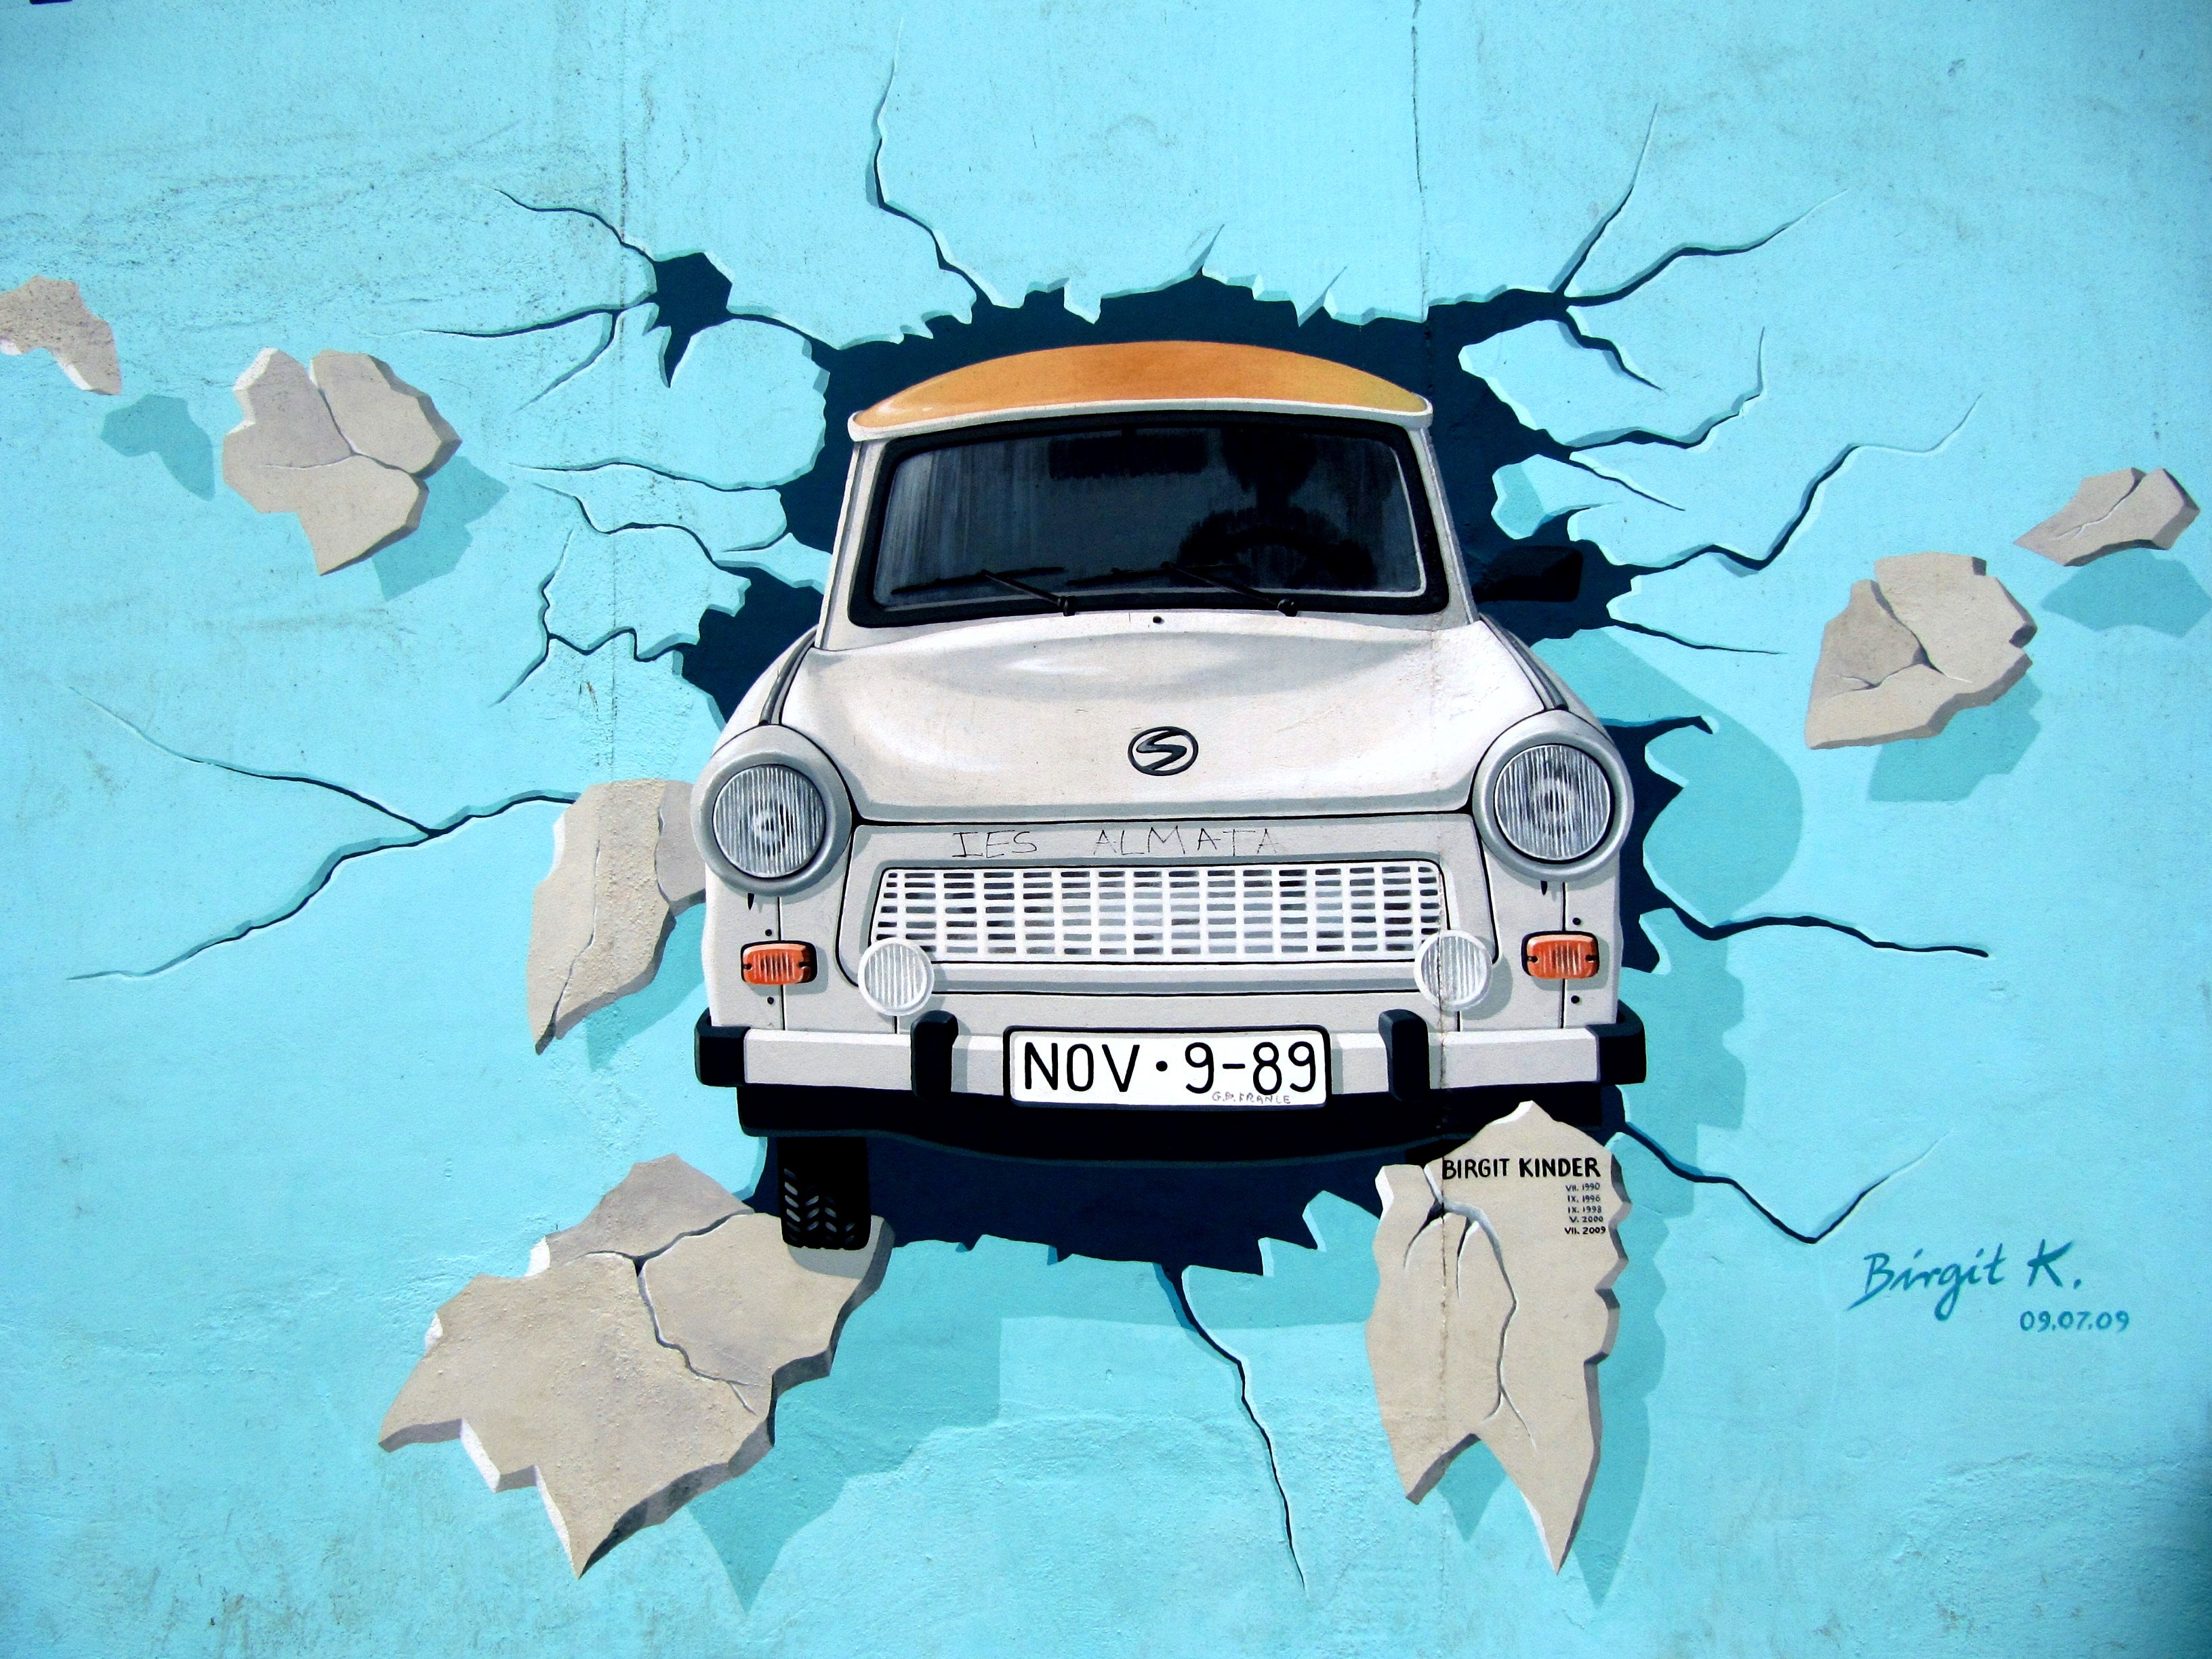 White Car Crash In Blue Wall Signature Painting 183 Free